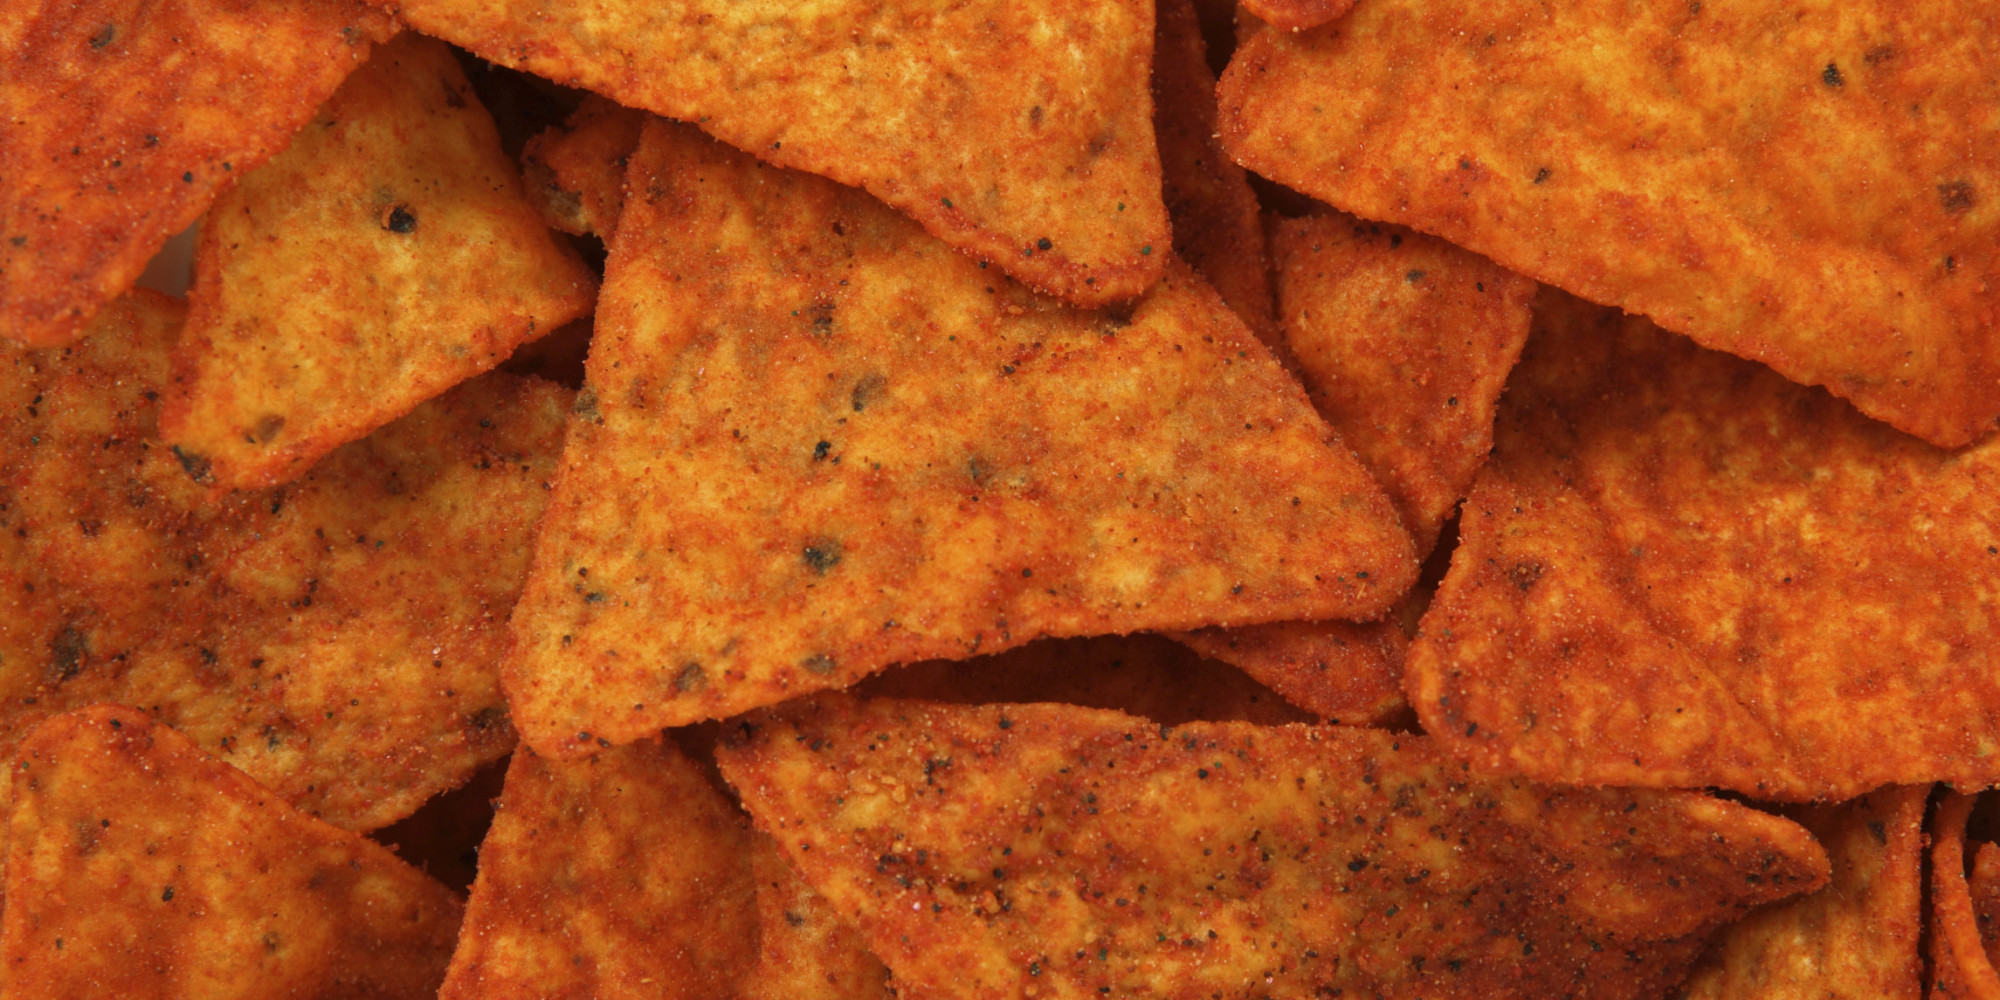 doritos flavored mountain dew is real pepsico confirms huffpost